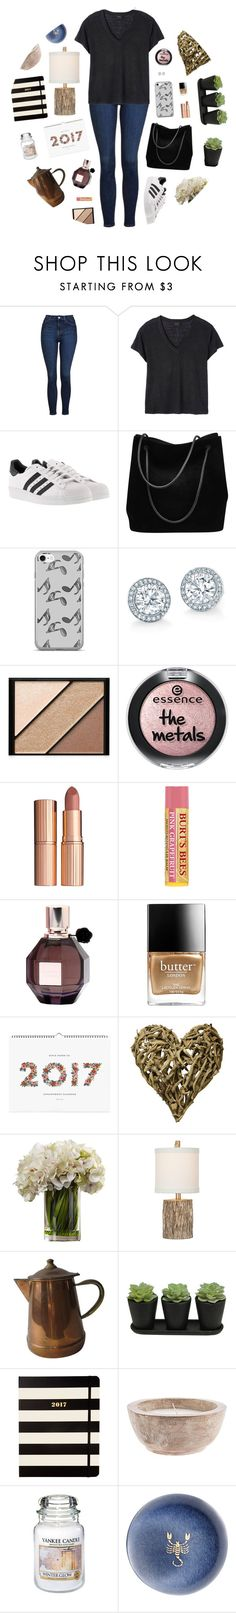 """We'll stick together for life"" by victoria-pittore ❤ liked on Polyvore featuring Topshop, Deby Debo, adidas, Gucci, Music Notes, Elizabeth Arden, Charlotte Tilbury, Viktor & Rolf, Butter London and Rifle Paper Co"